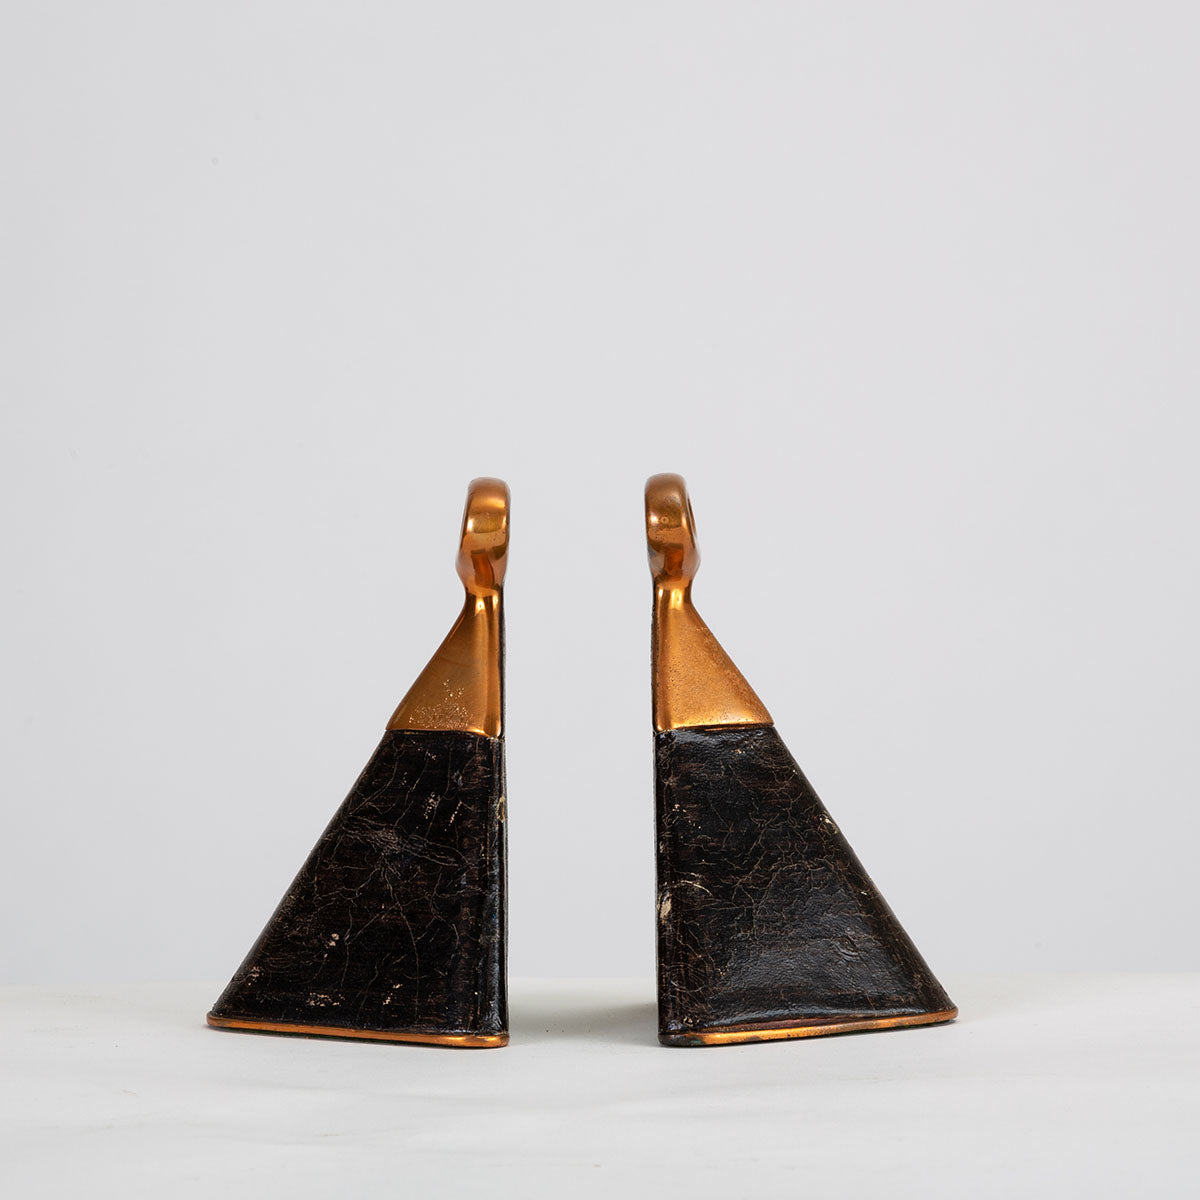 Copper & Leather Bookends by Ben Seibel for Raymor